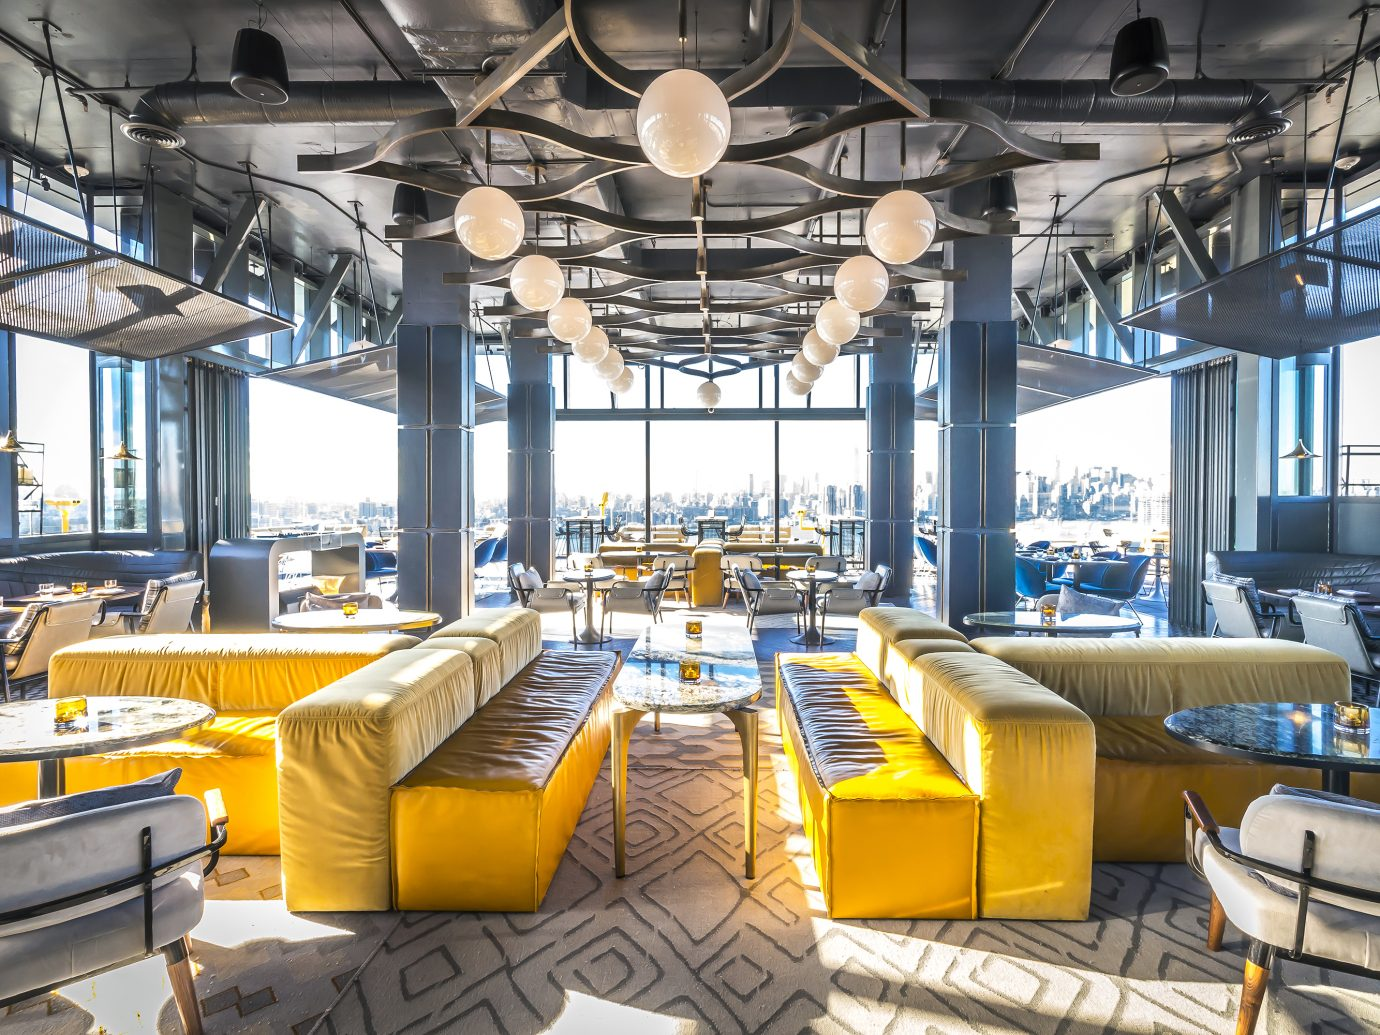 sunny day showing off interior of a bar with bright yellow couches and a very airy space